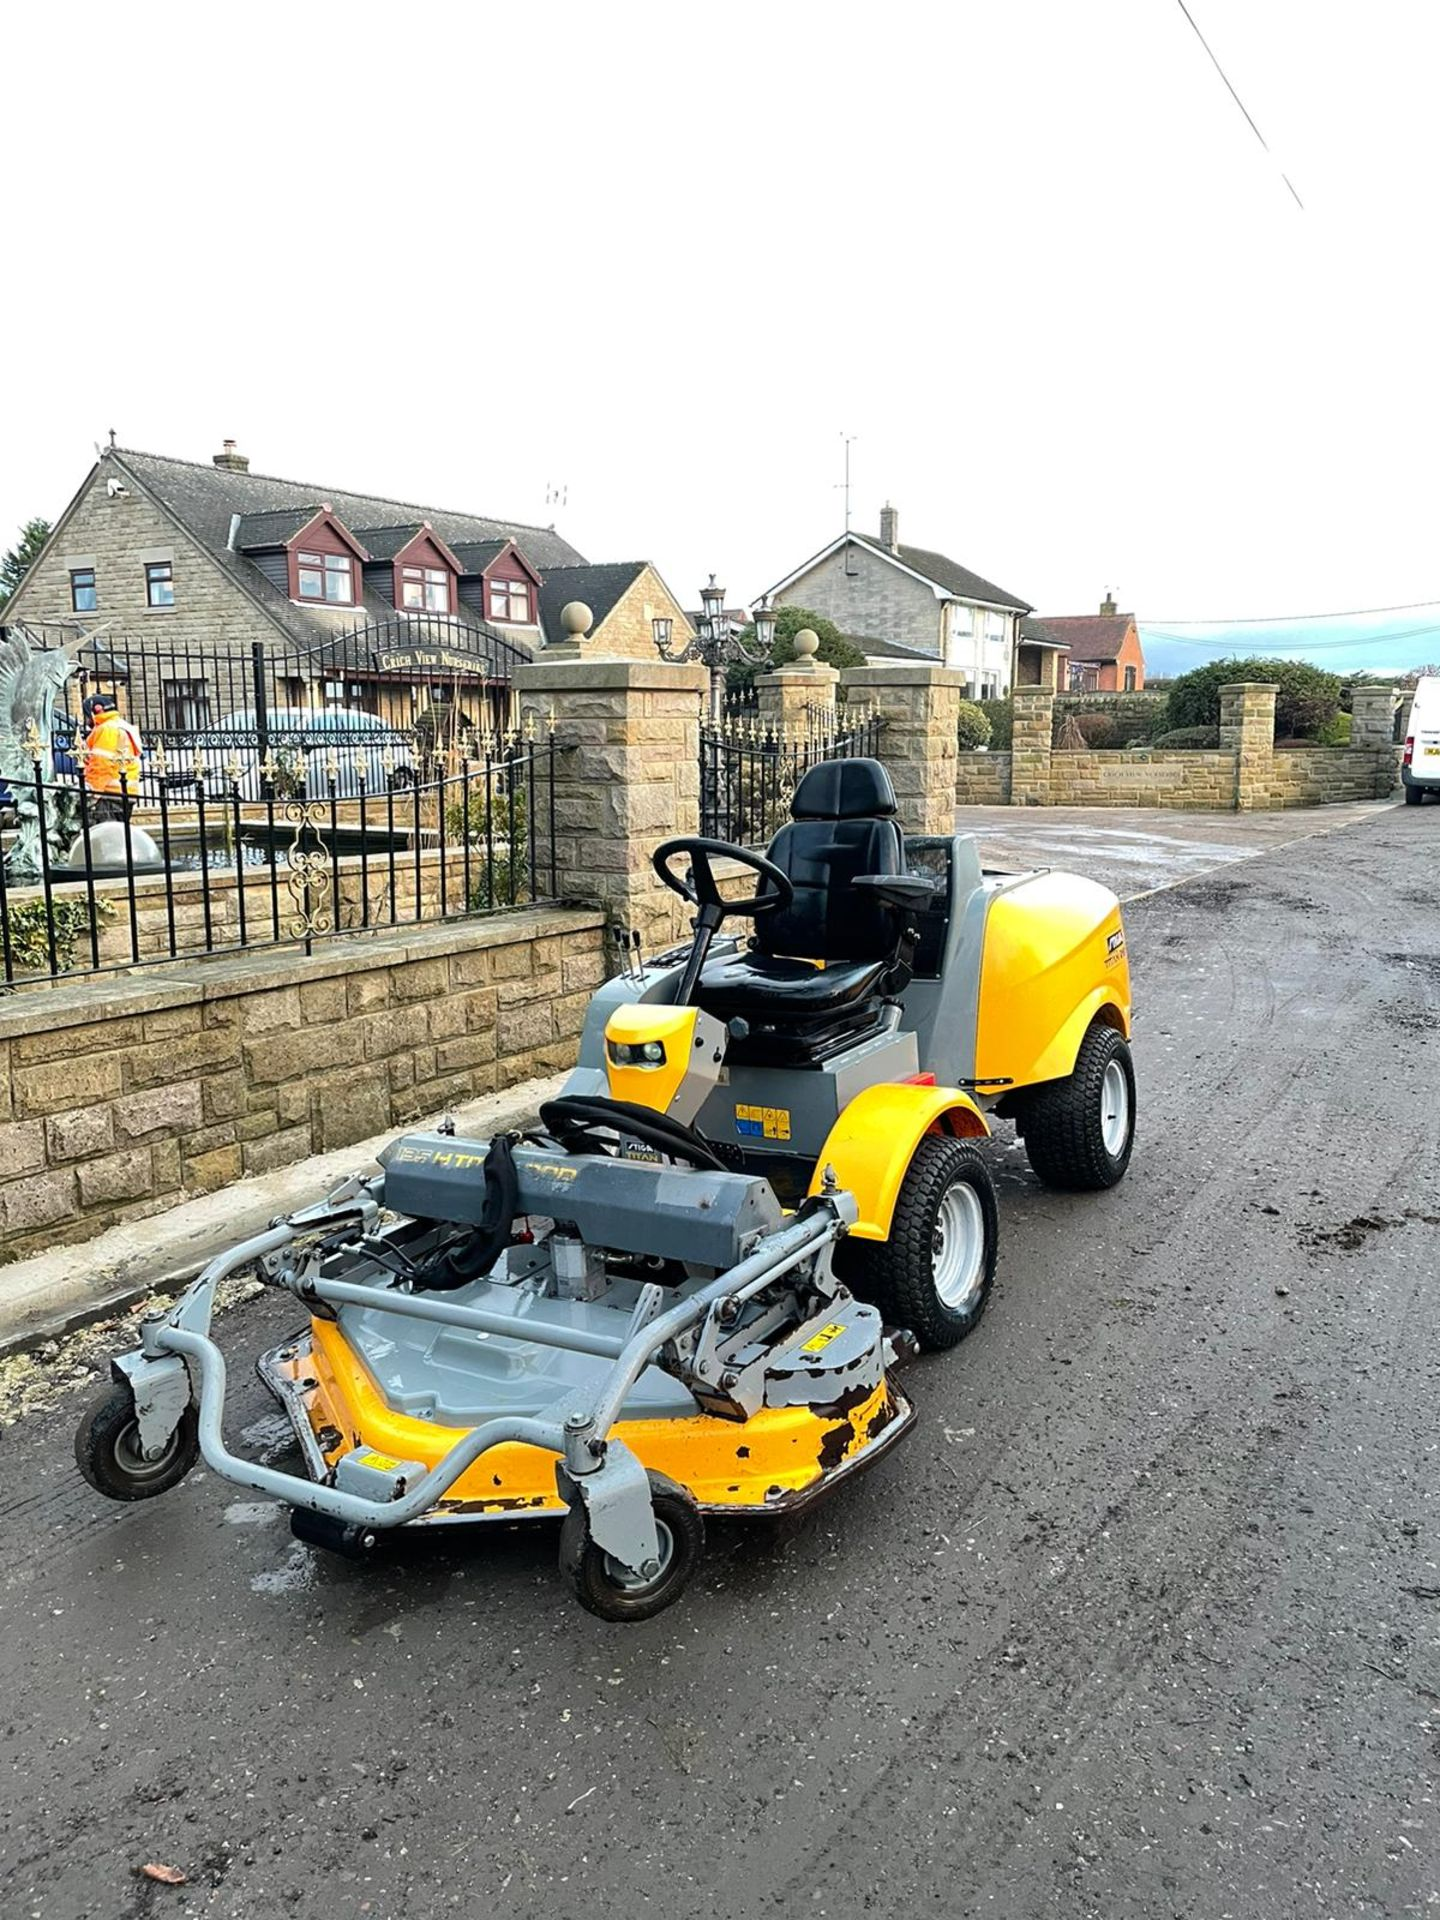 STIGA TITAN 26H RIDE ON LAWN MOWER, RUNS, DRIVES AND MOWS, FULL HYDRAULIC DECK, 650 HOURS *PLUS VAT* - Image 2 of 6